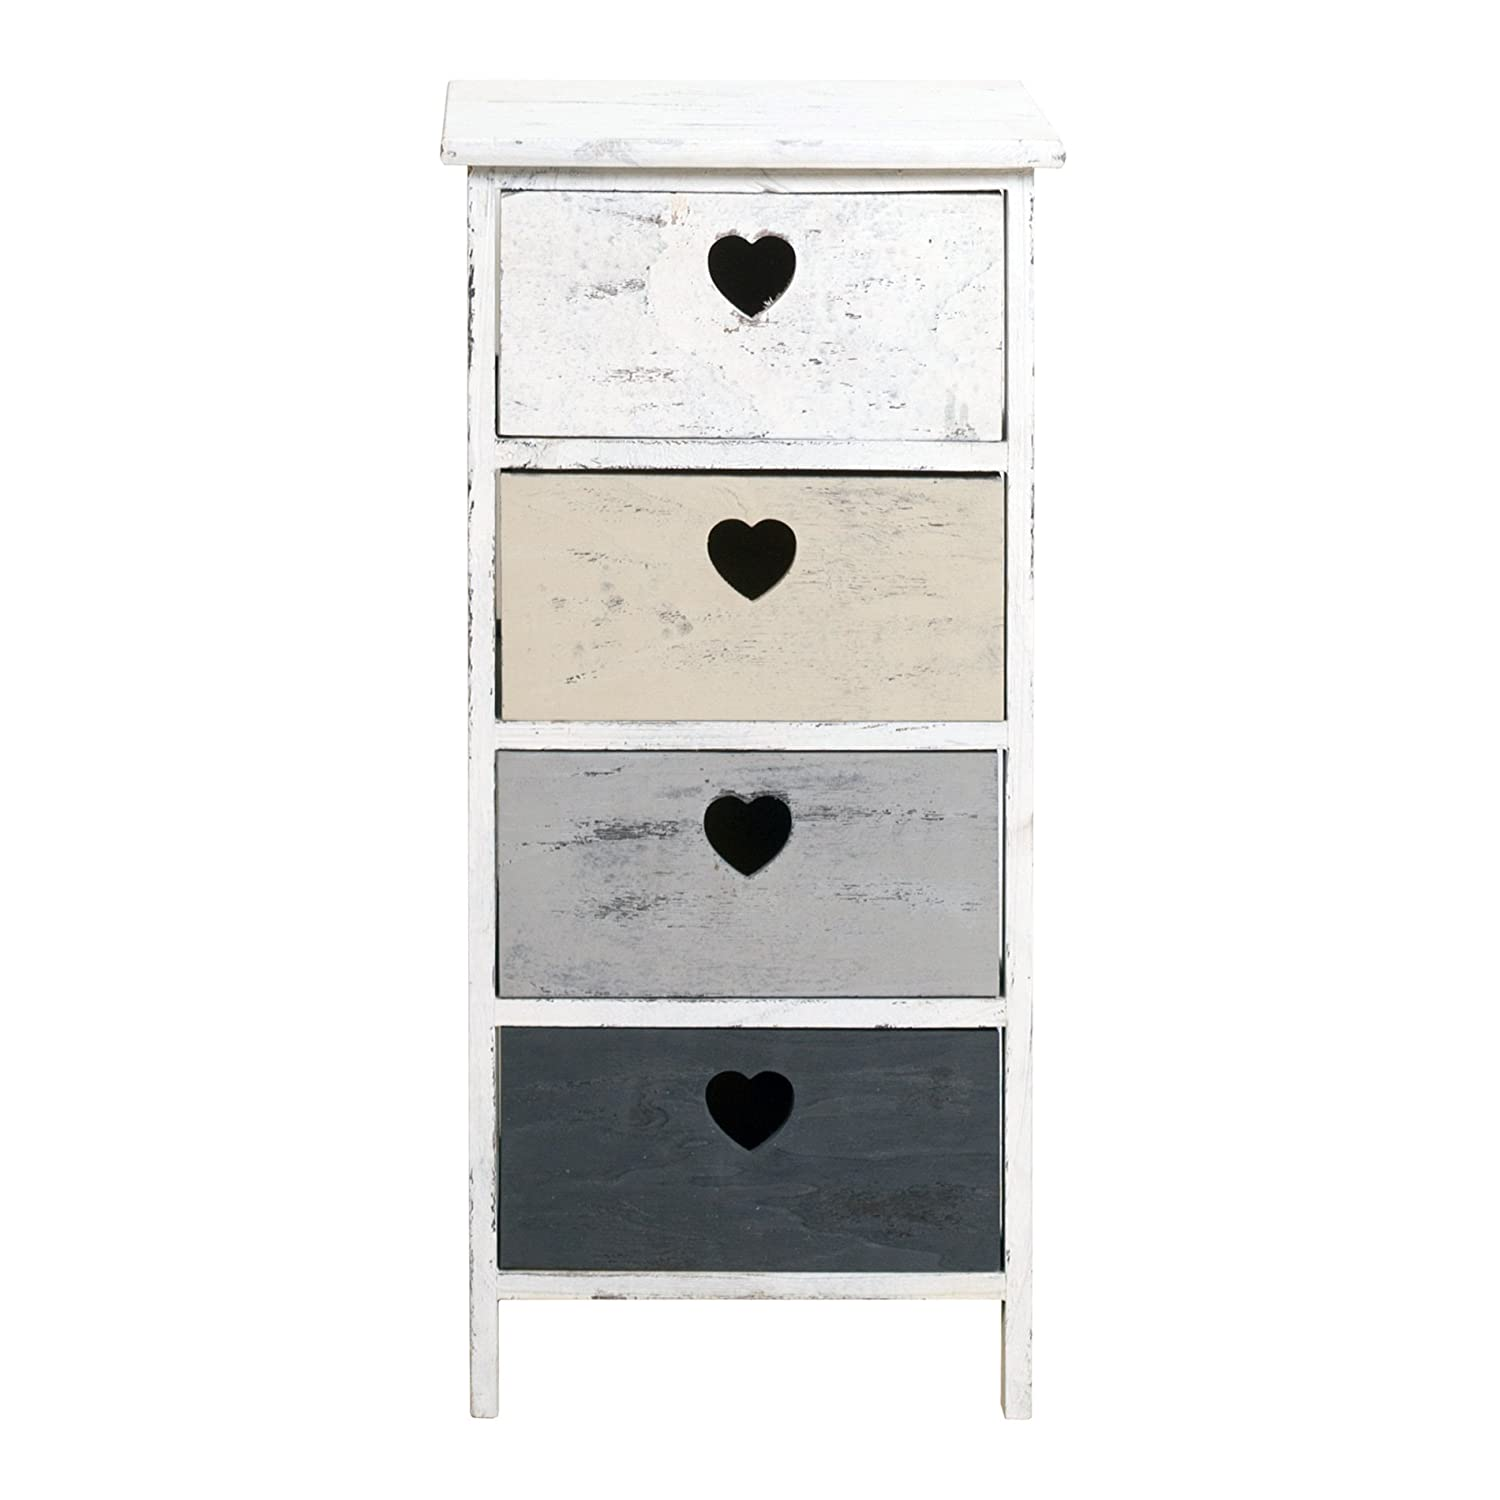 Rebecca Srl Chest od Drawers cabinet DOLCE CASA 4 Drawers White Grey Beige Wood Heart Shabby Chic Vintage Bedroom Bathroom (Cod. RE4394)